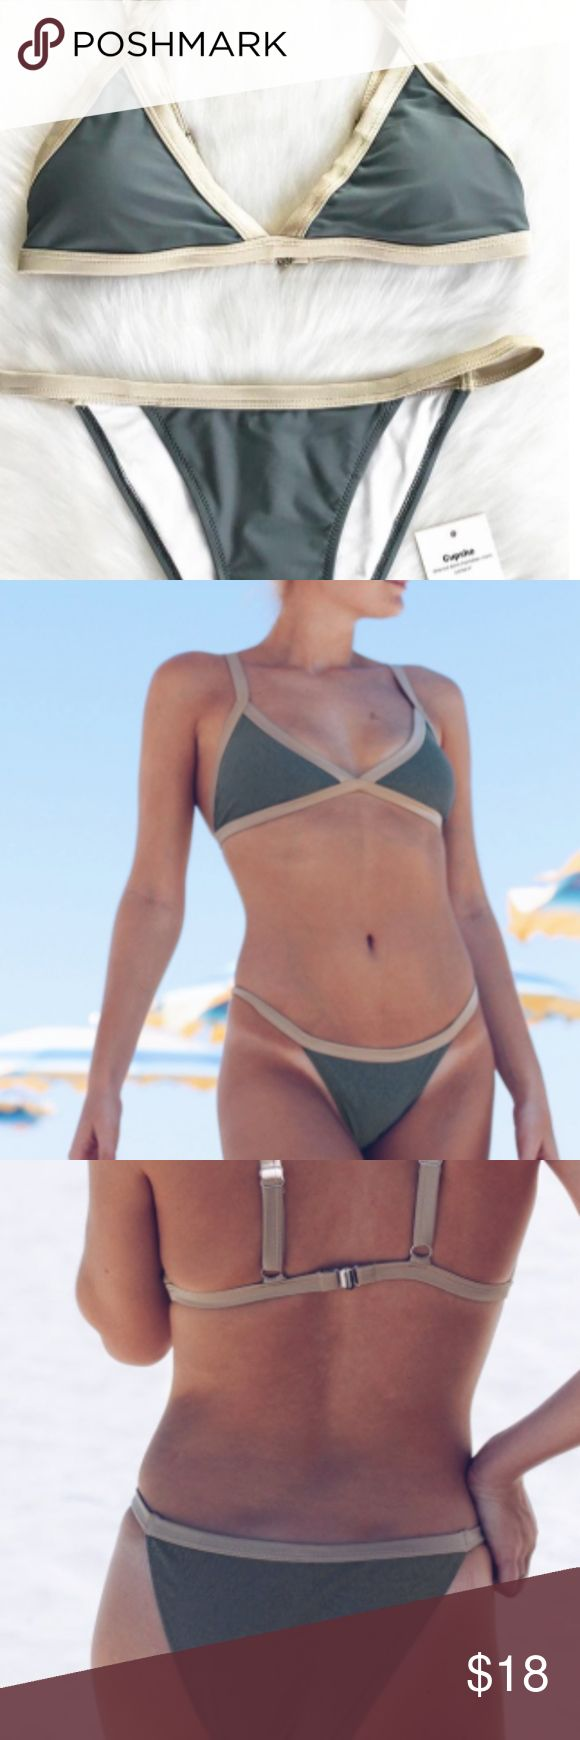 CUPSHE BIKINI (low cut) NEW WITH TAGS If you are looking for a very low but not a lot of cleavage bathing suit, this is it. It is very comfortable and fits well. Size small. Has a greyish green tint and beige. Is cheeky. CUPSHE Swim Bikinis